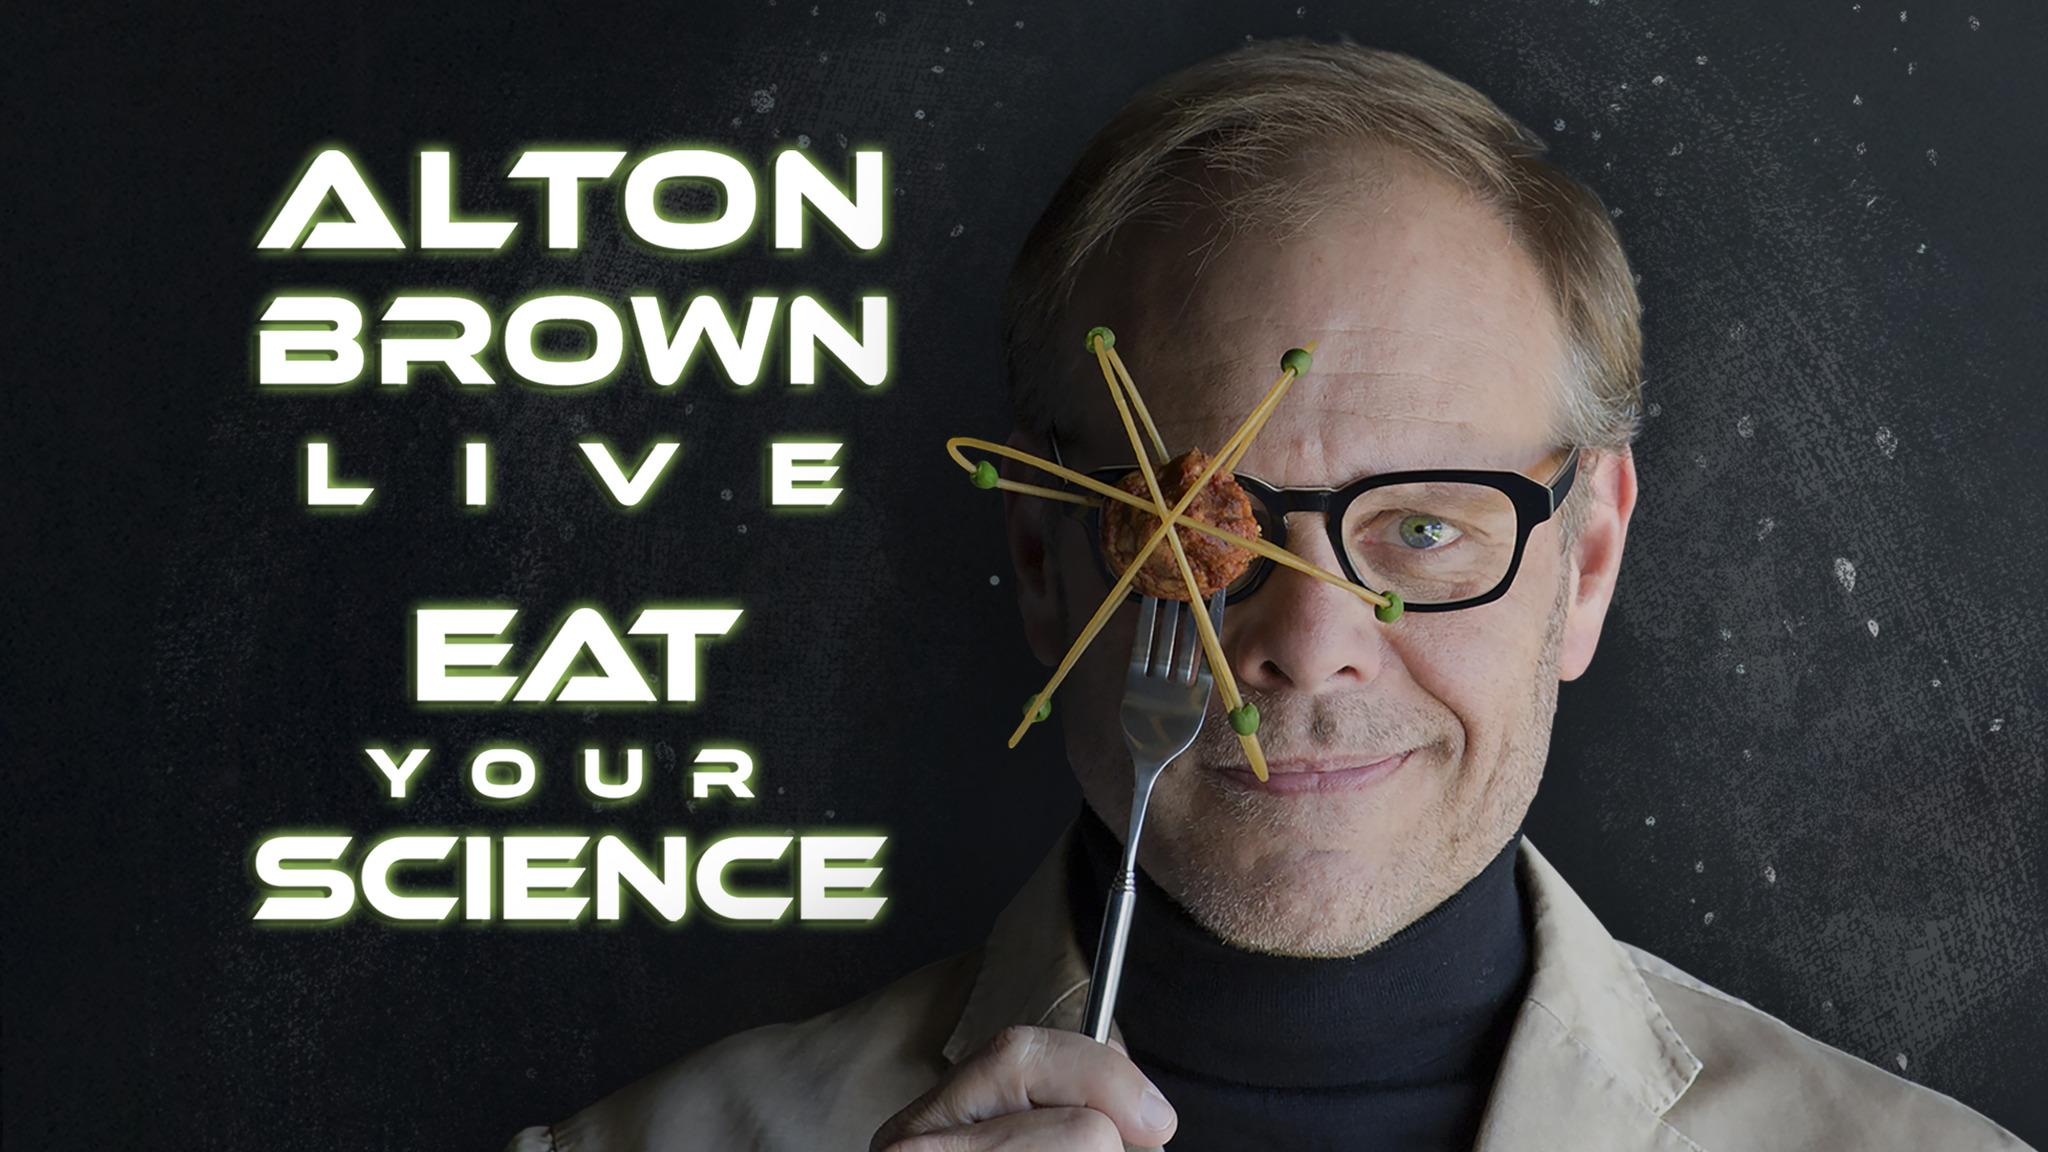 Alton Brown at Morrison Center for the Performing Arts - Boise, ID 83725